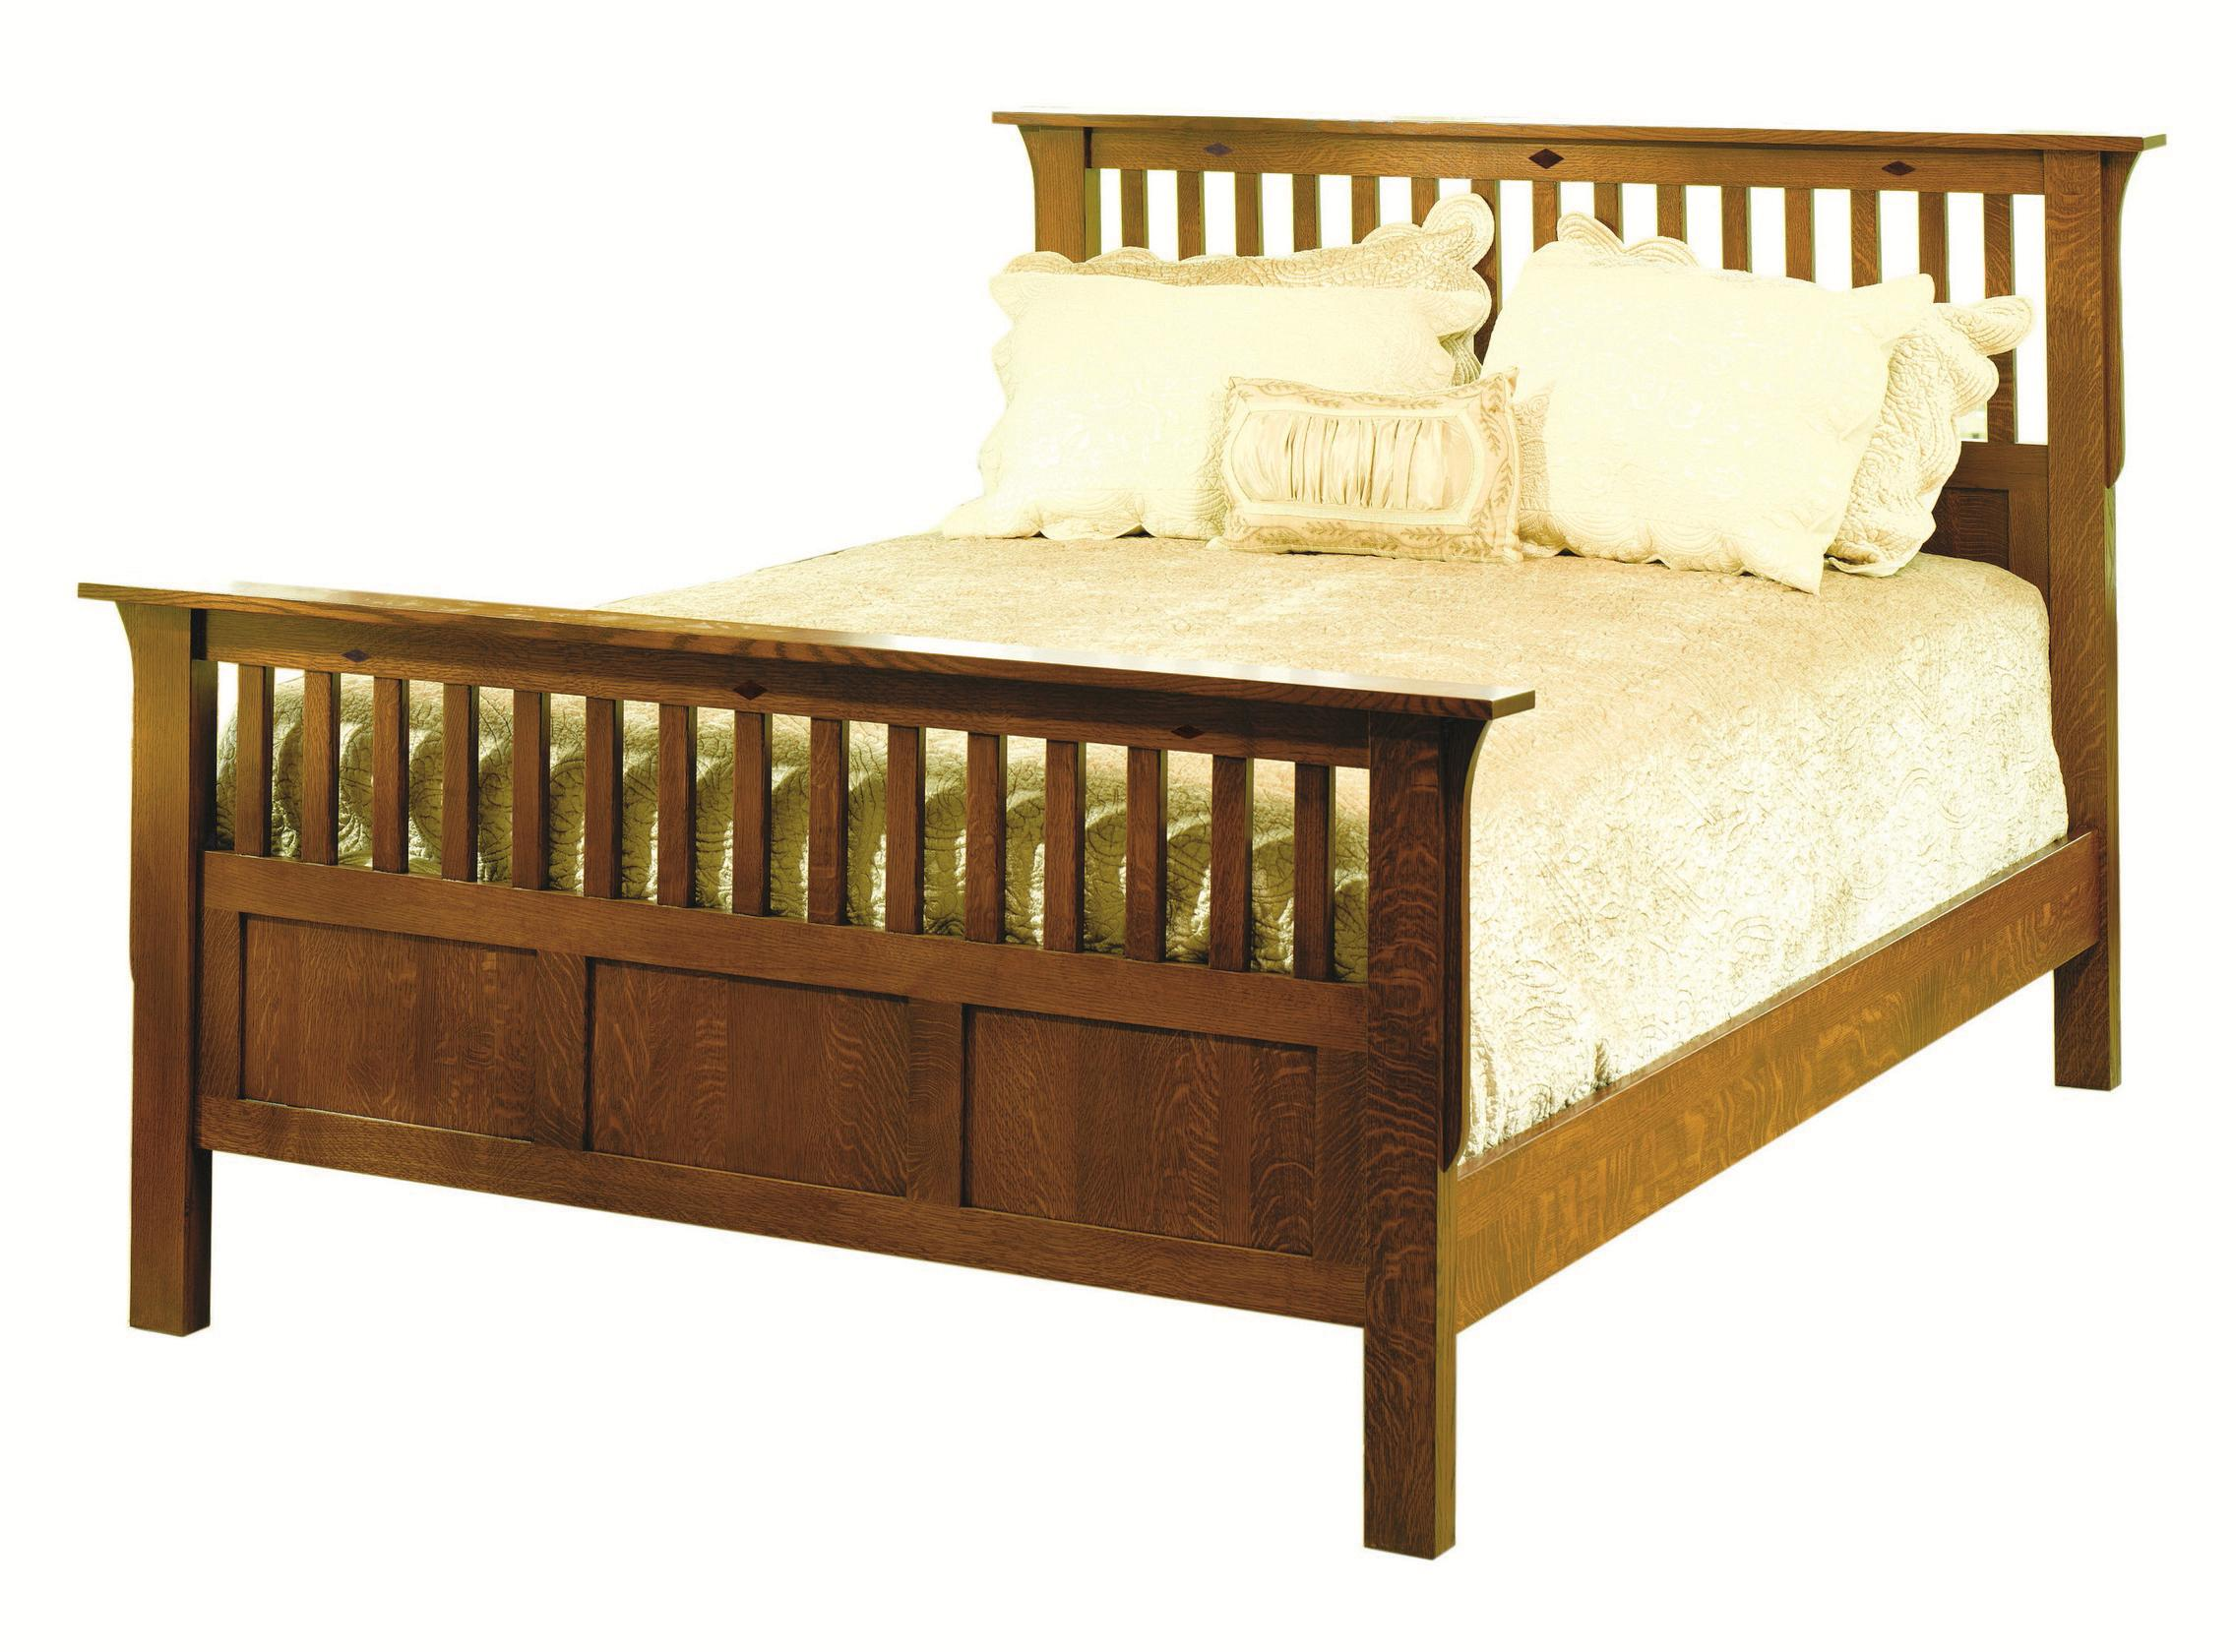 Yutzy urban collection prairie home 58131 mission queen for Urban home beds